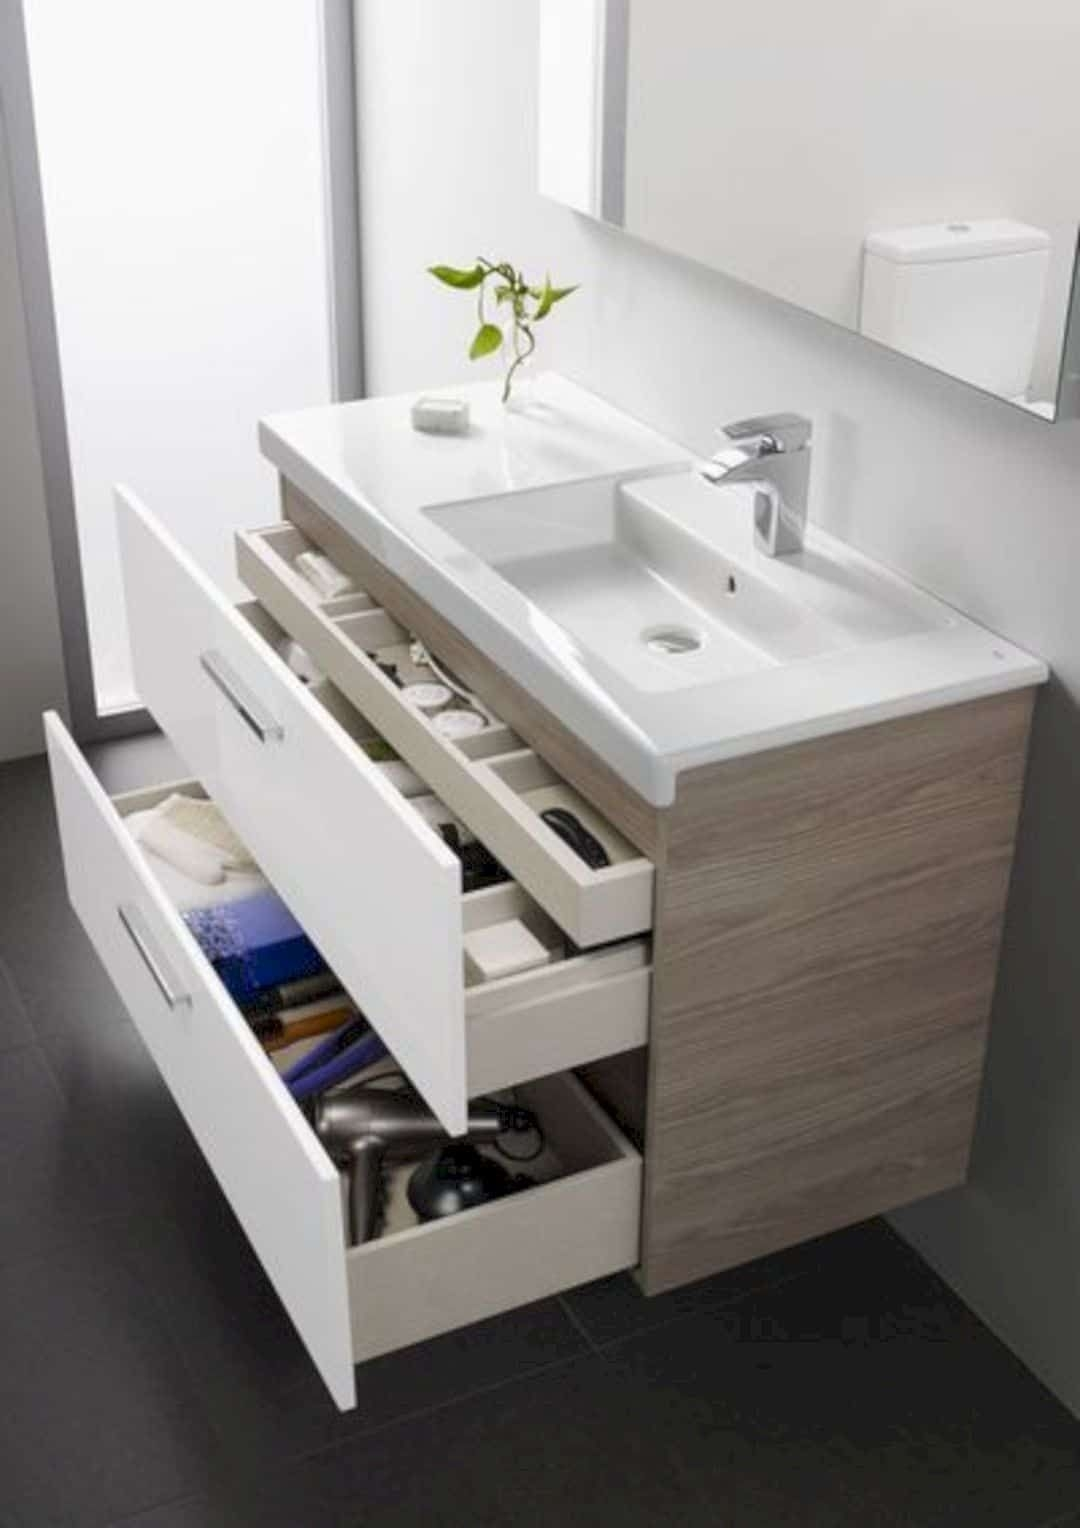 15 Inspiring Bathroom Design Ideas With Ikea  Futurist Architecture